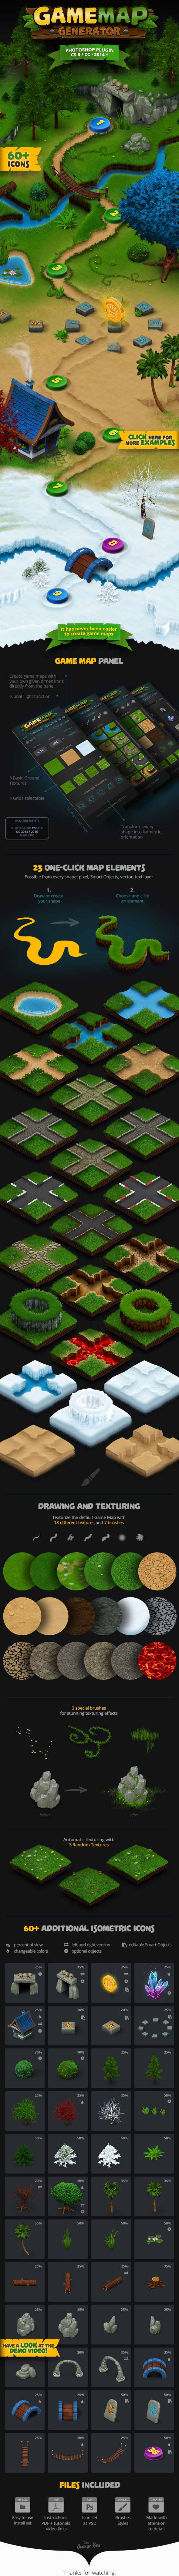 Game Map Generator   Build your own map or background for your game by using the Game Map Generator. Download now here: https://graphicriver.net/item/game-map-generator/17015466?ref=KlitVogli